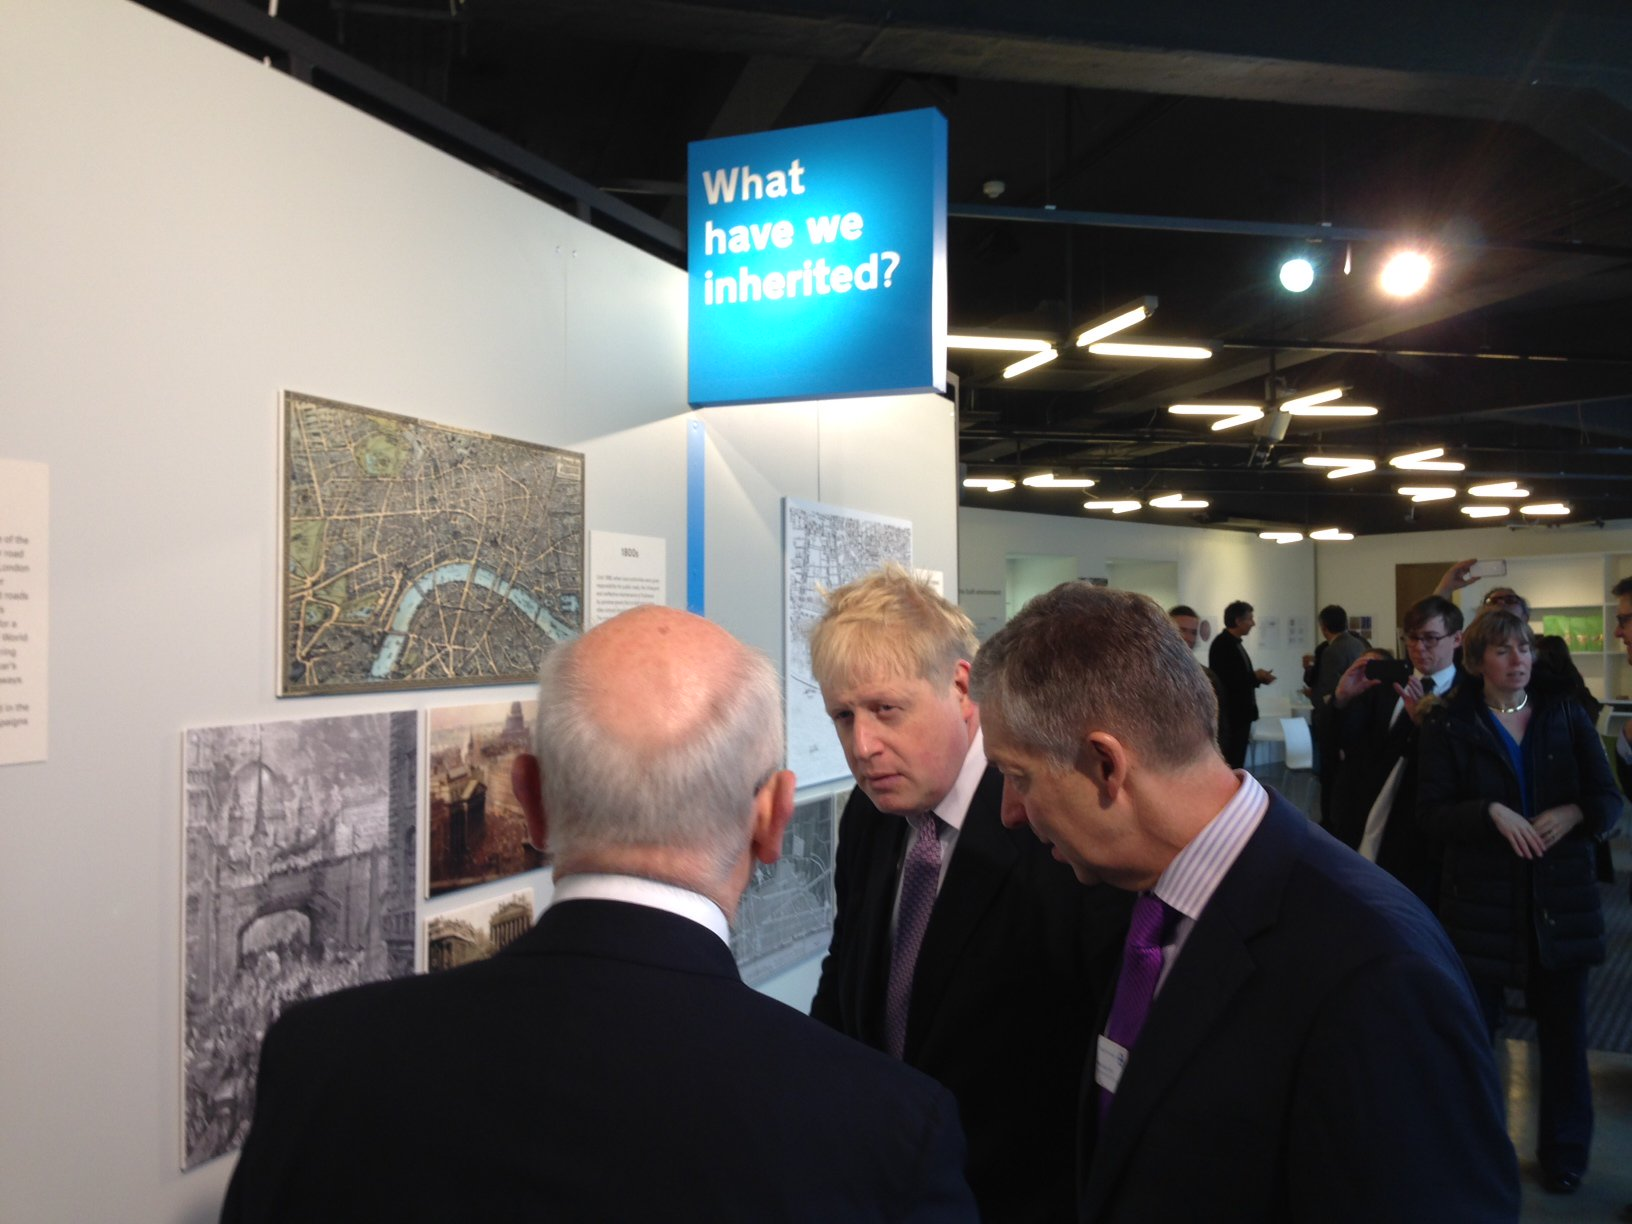 Good to visit @nlalondon this morning and see the Future Streets exhibition - we need long-term solutions for roads https://t.co/VBX6tiafX2